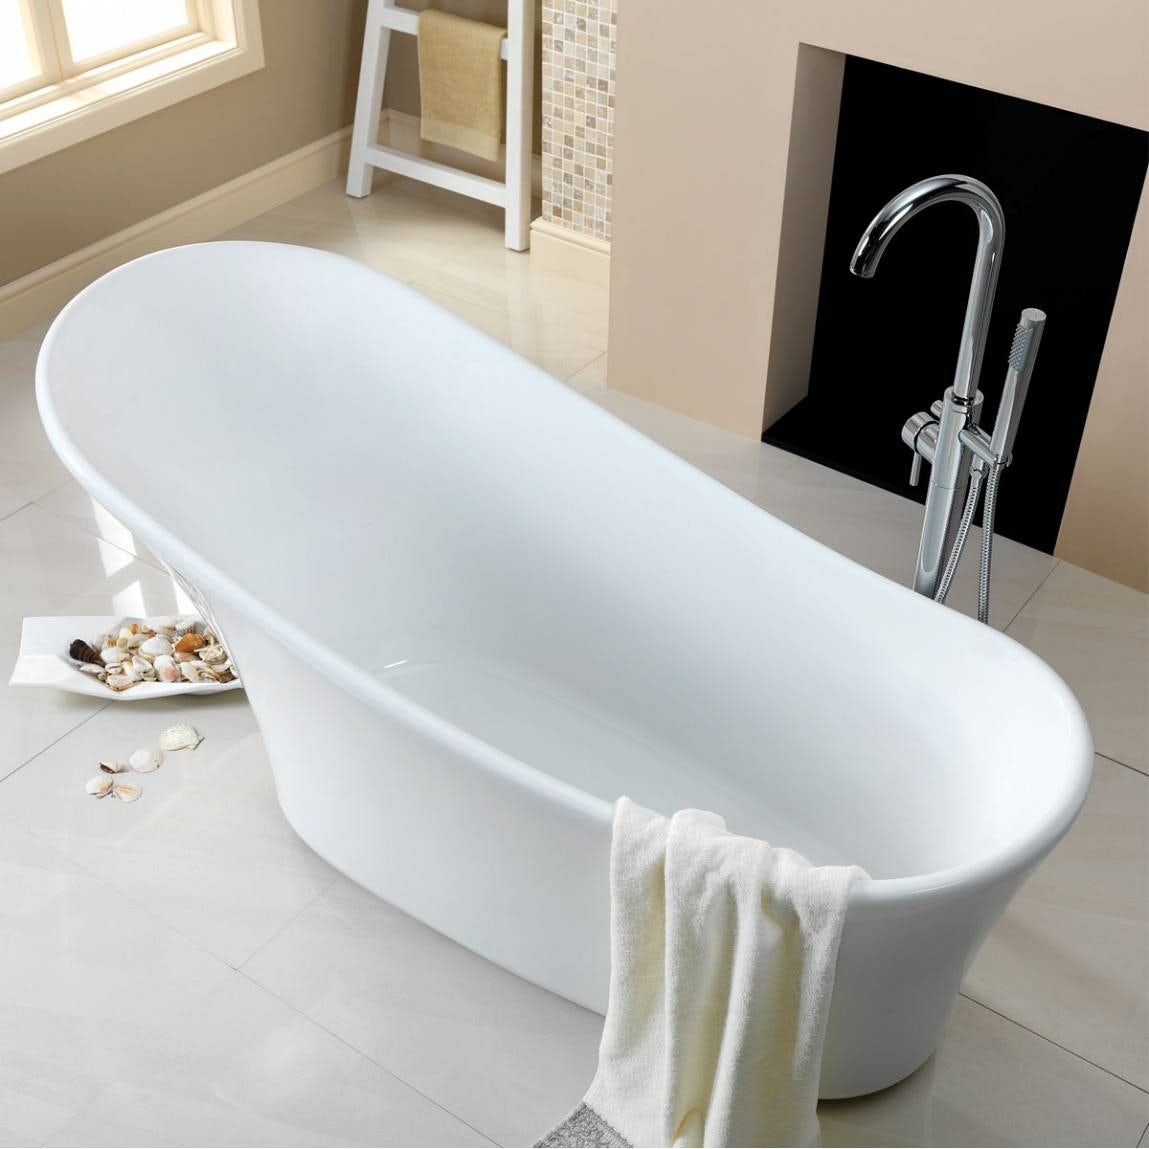 Harding slipper bath